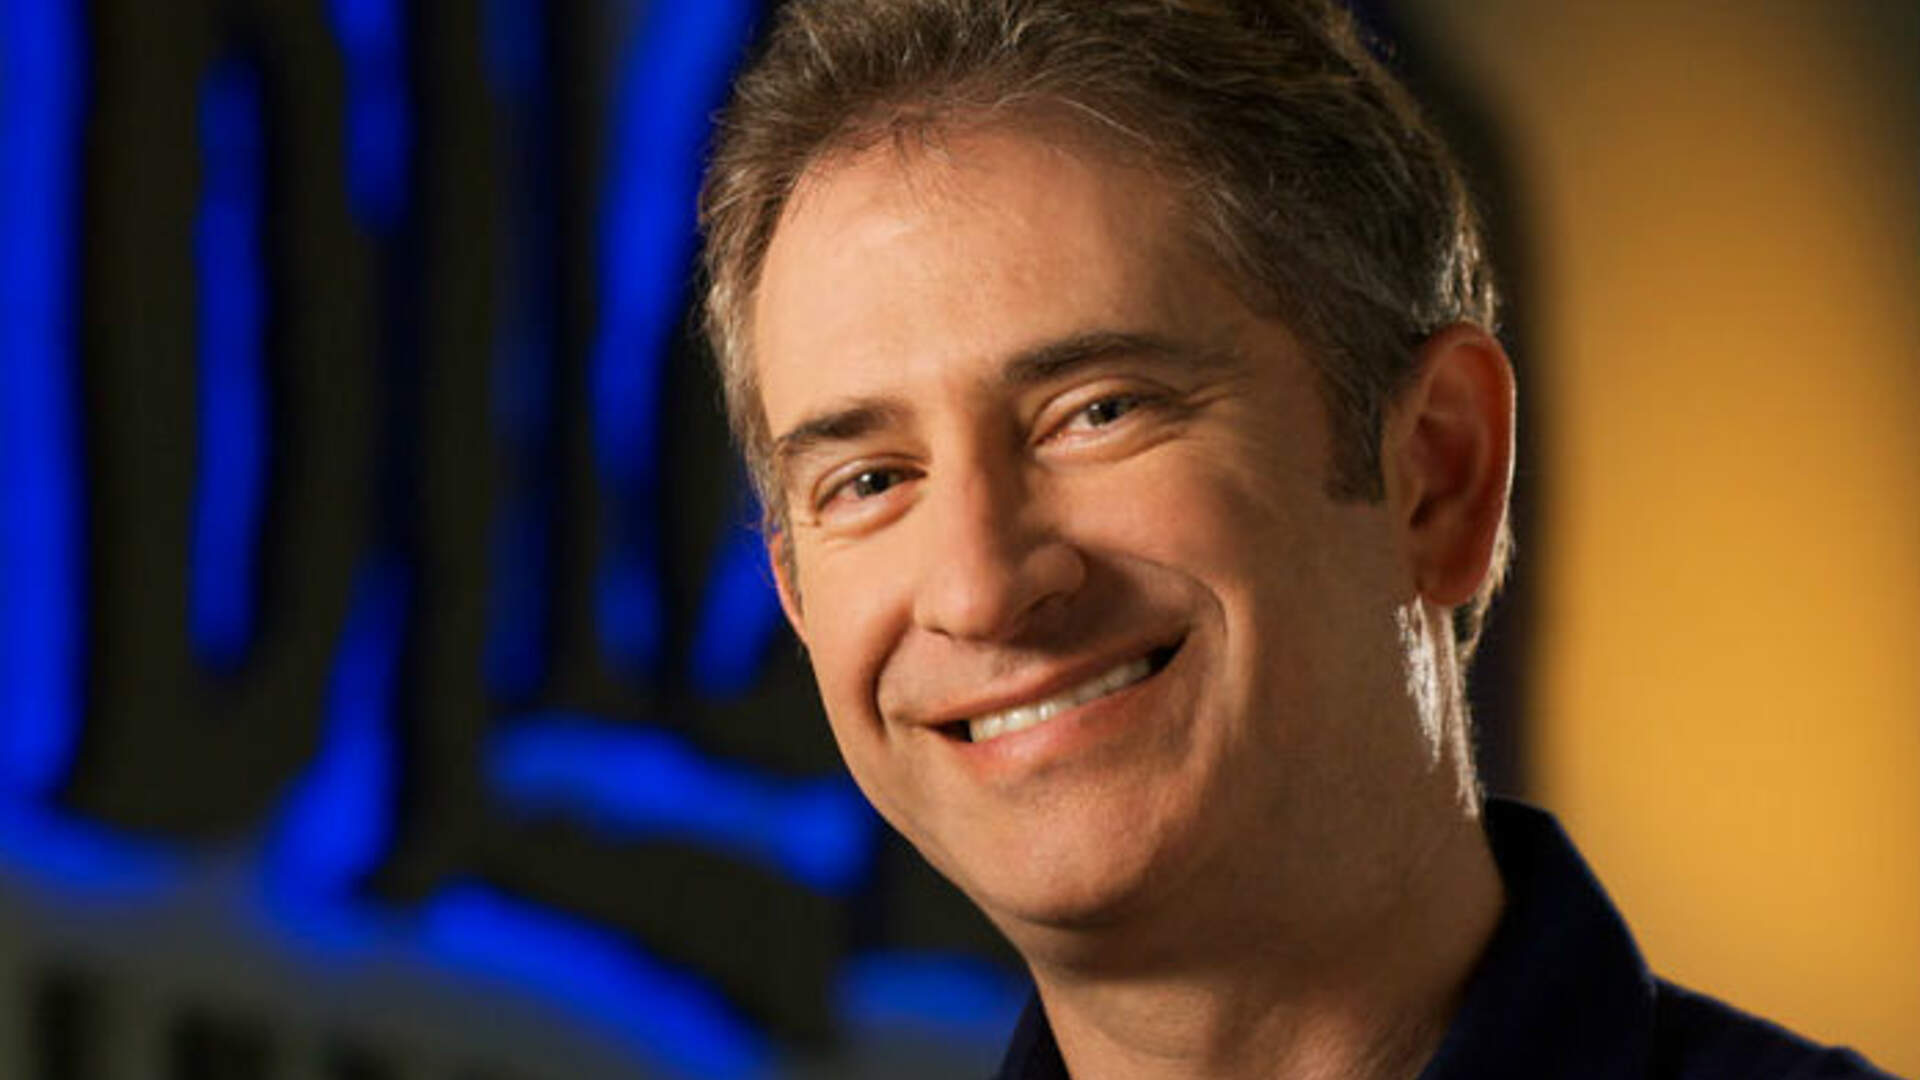 Former Blizzard Co-Founder Discusses Some of Blizzard's Biggest Failings, Hints at a Comeback